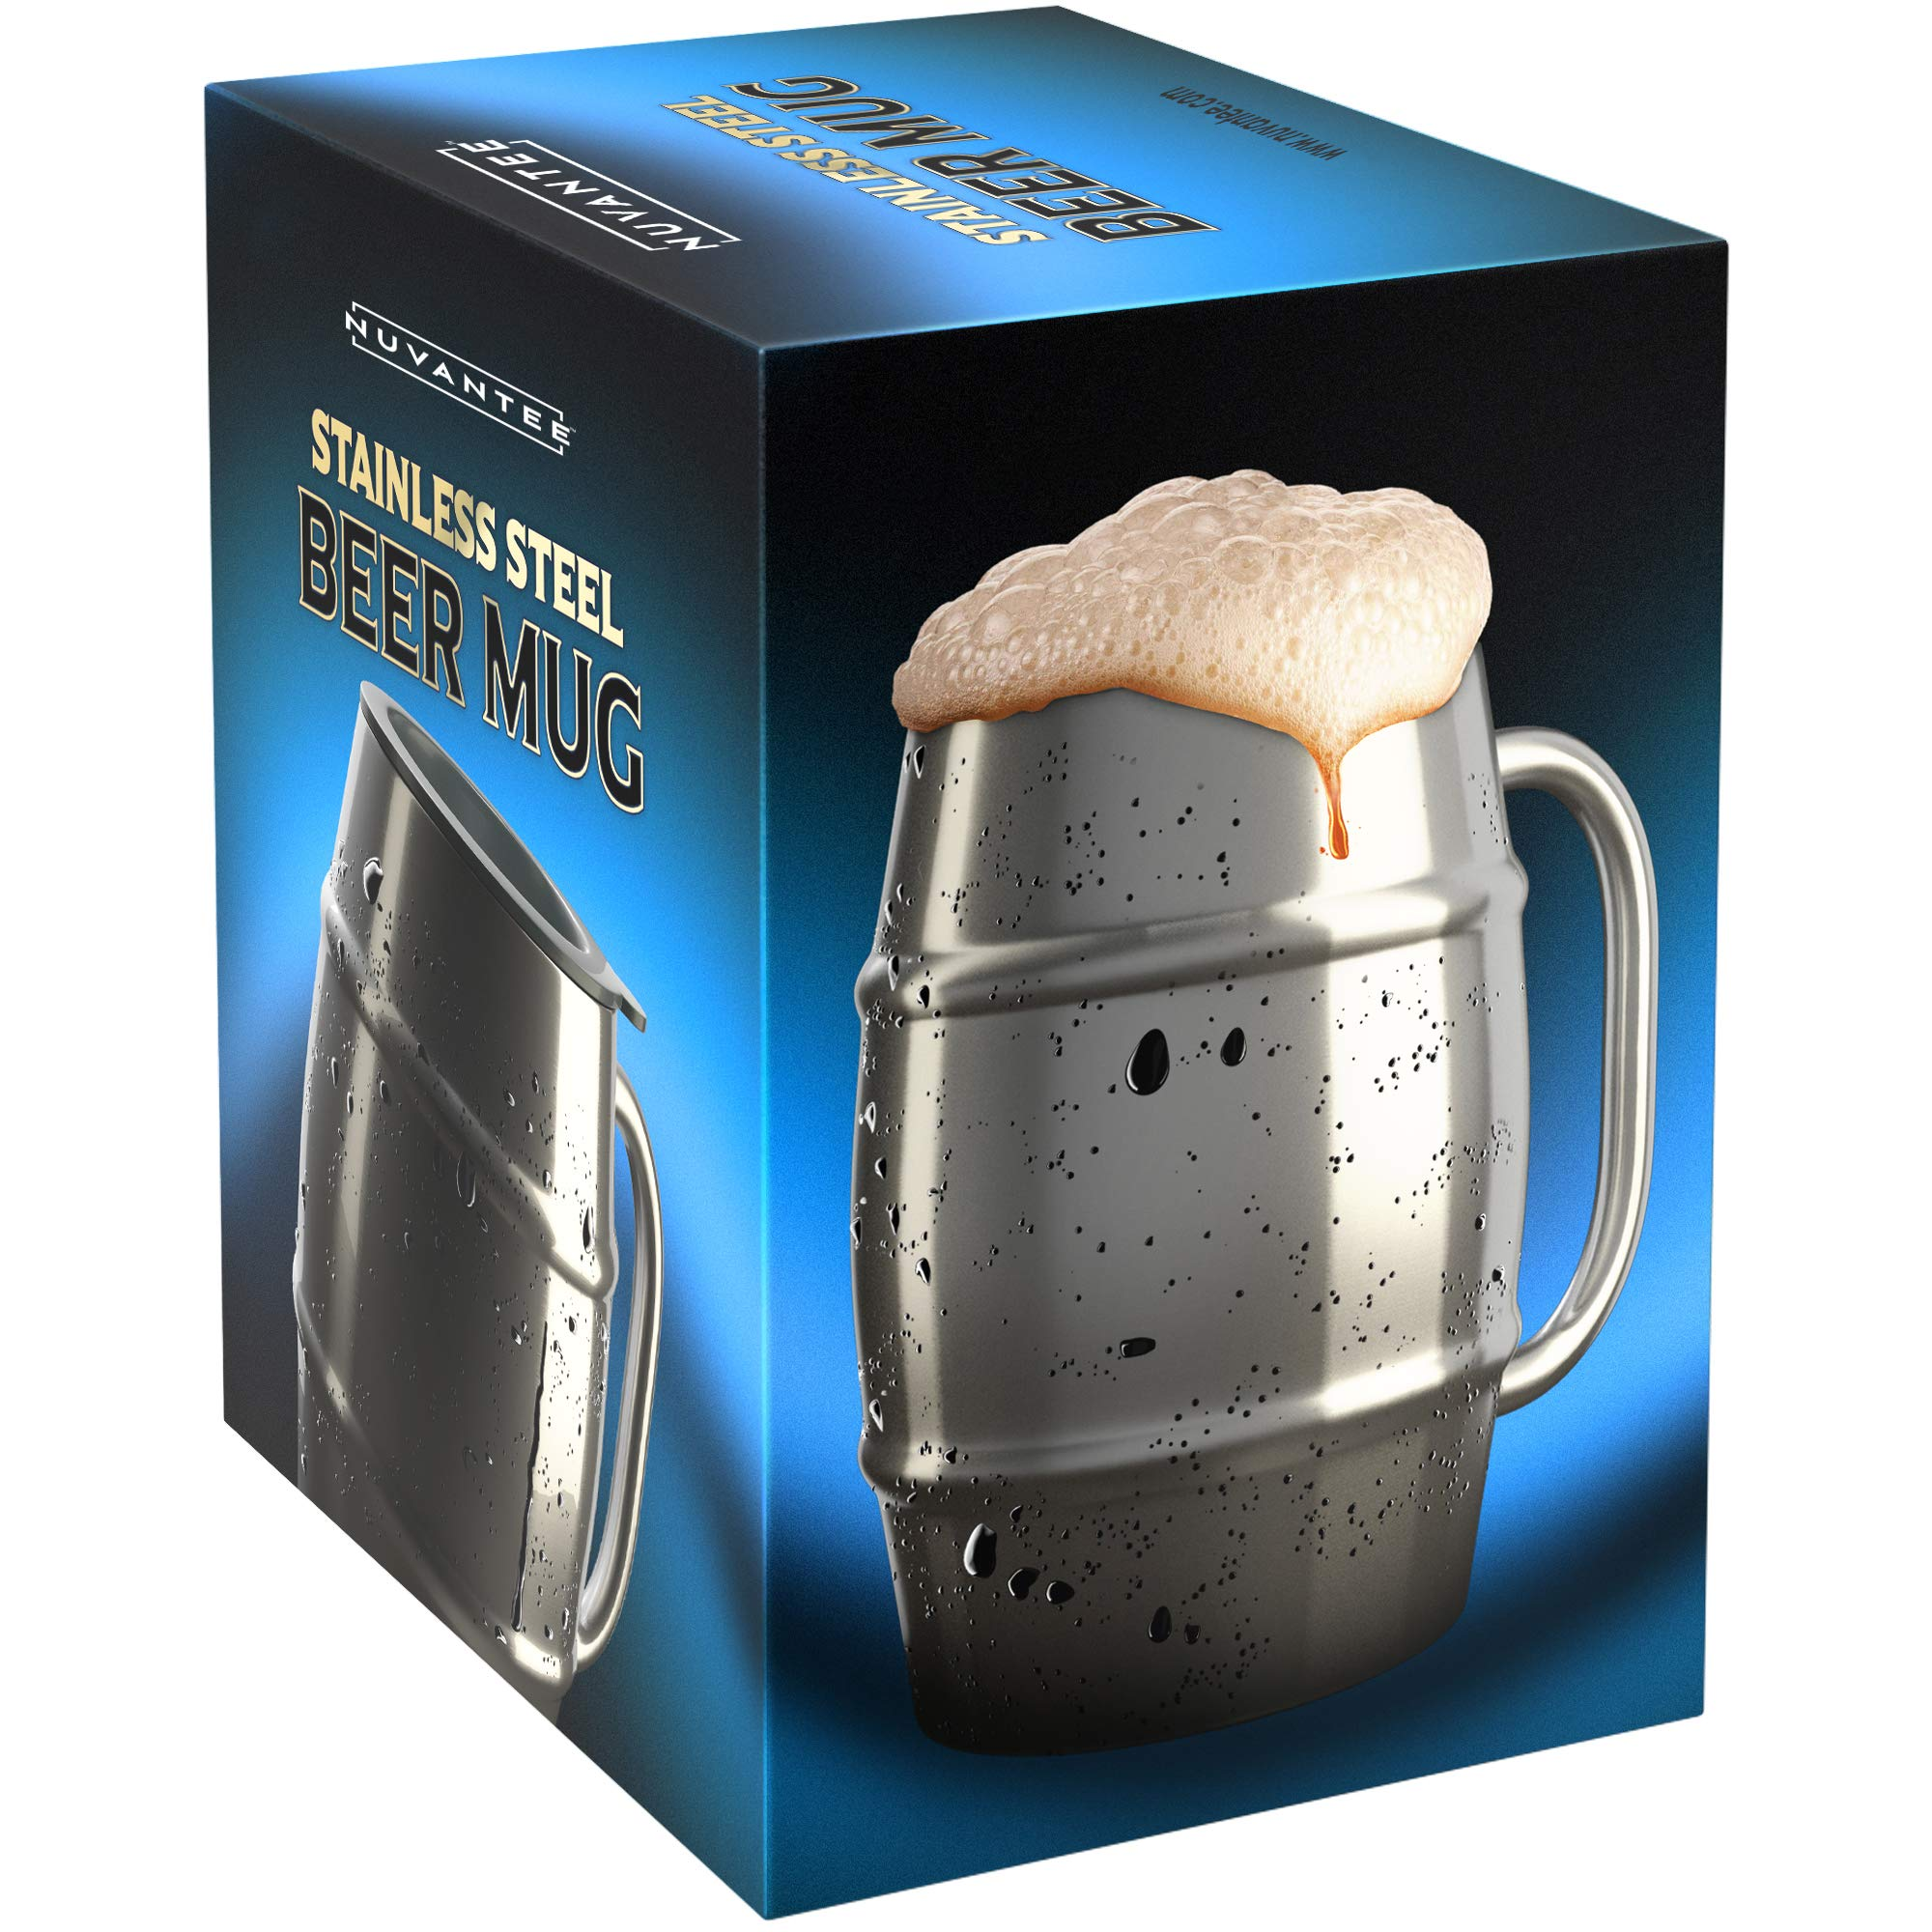 Nuvantee Beer Mug – Premium Stainless Steel Mug/Coffee Cup With Bonus Lid – 16.9 OZ Double Wall Air Insulated - Better Then Glass Mugs - Perfect Gift For Men